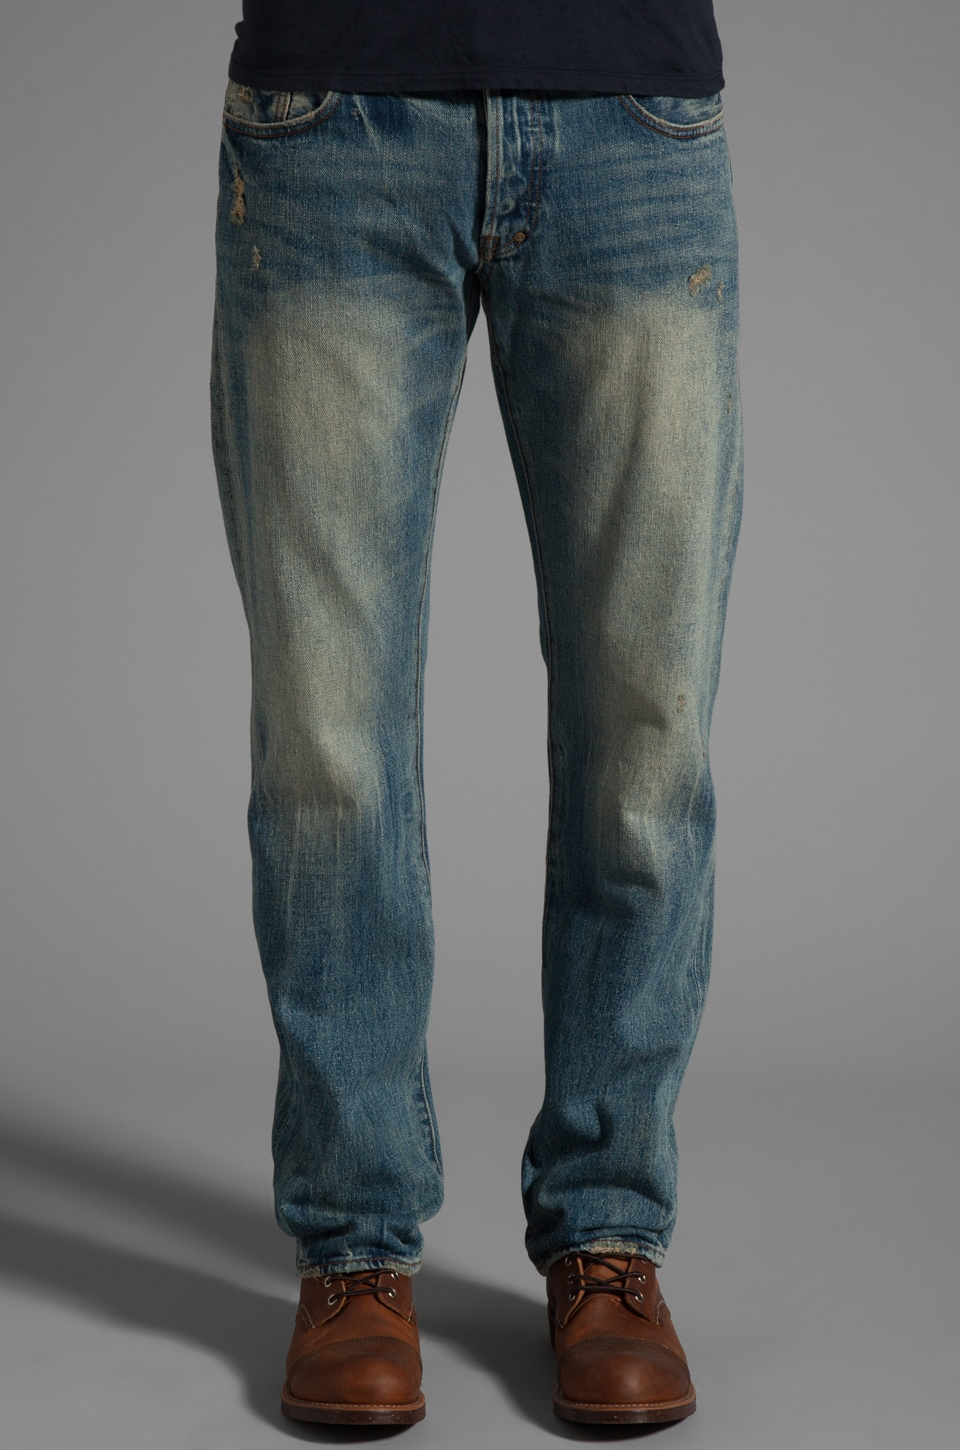 PRPS Goods & Co. Men's Woven Denim in 5 Year Wash